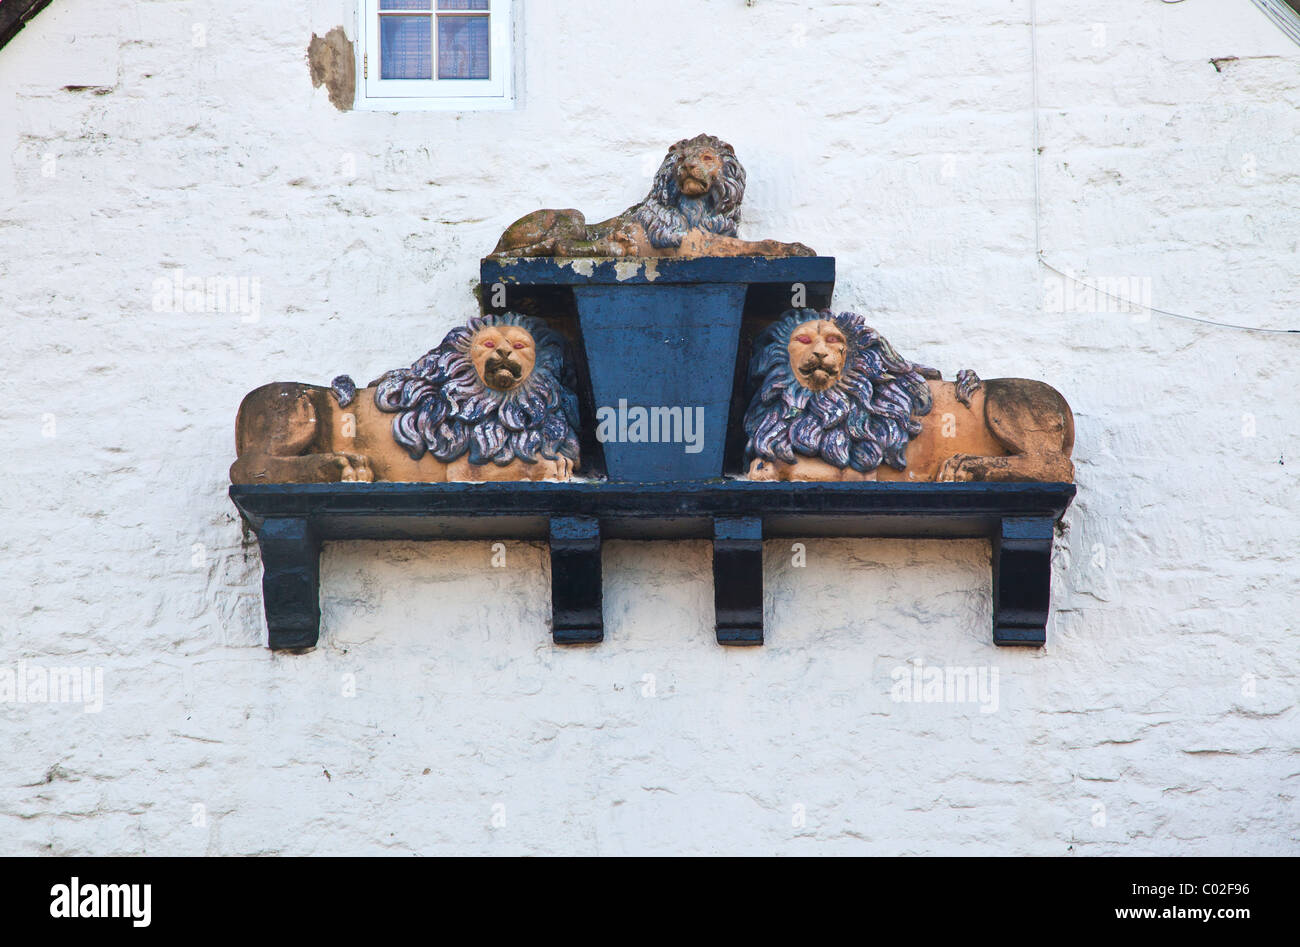 Three dimensional sign showing three lions on the wall of the former inn in the village of Holt, Wiltshire, England, - Stock Image